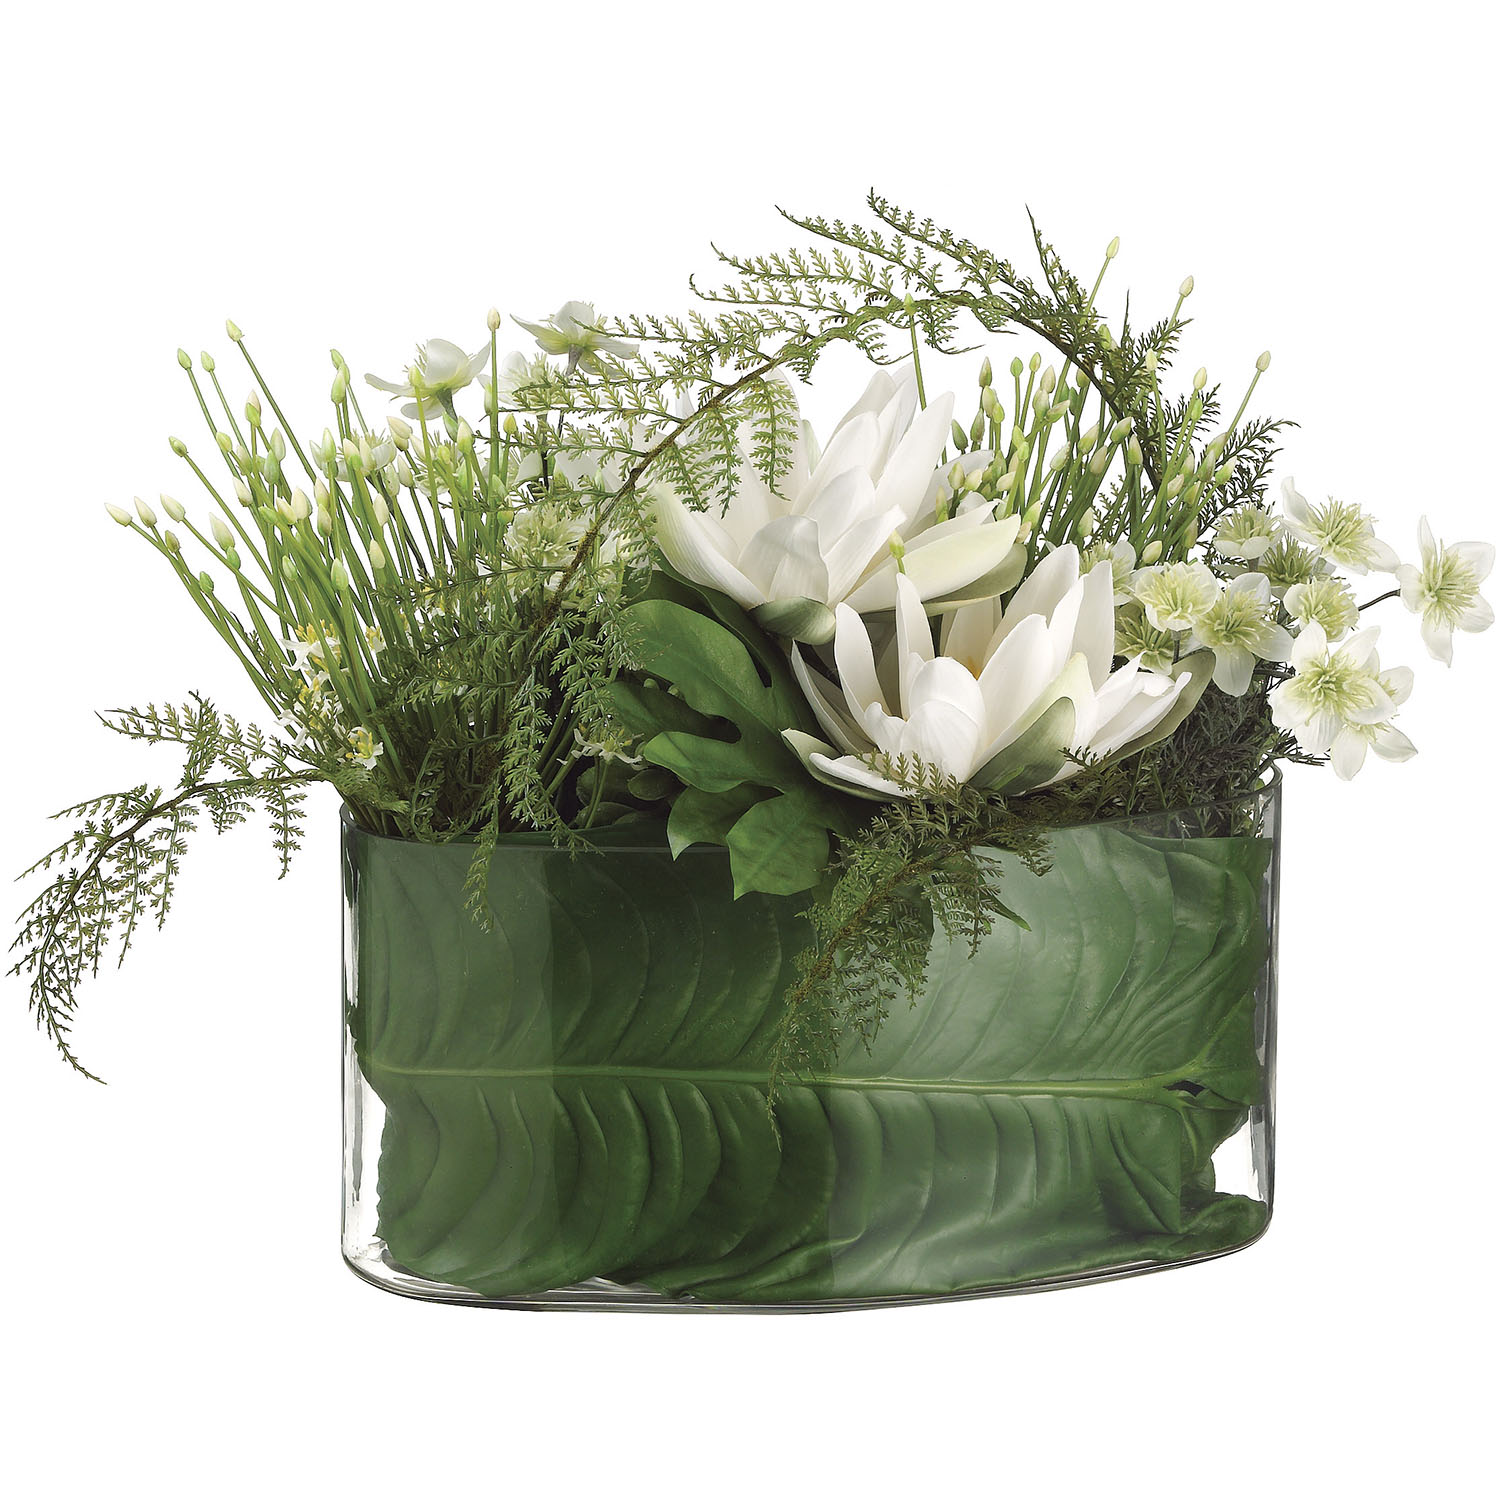 18 Inch Water Lily Allium Lace Fern In Glass Container Wf1379